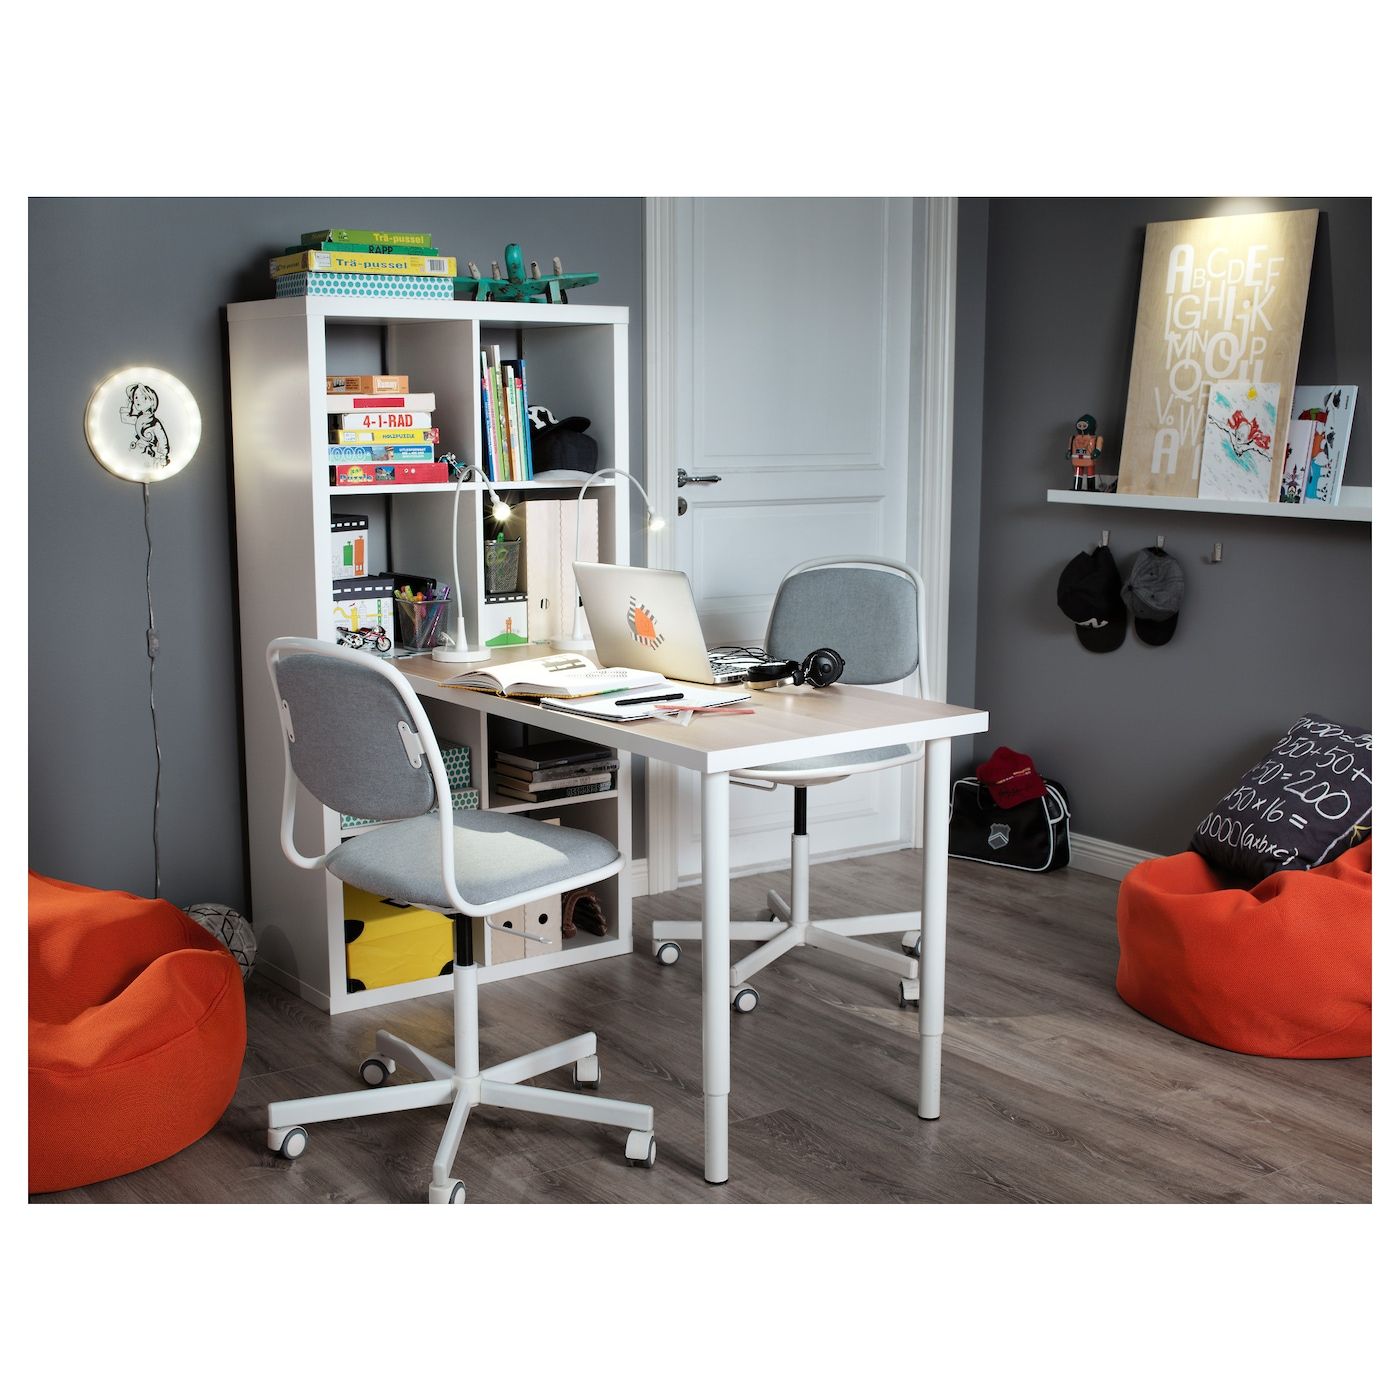 Ikea Kallax Desk Combination Pre Drilled Holes For Legs Easy Embly